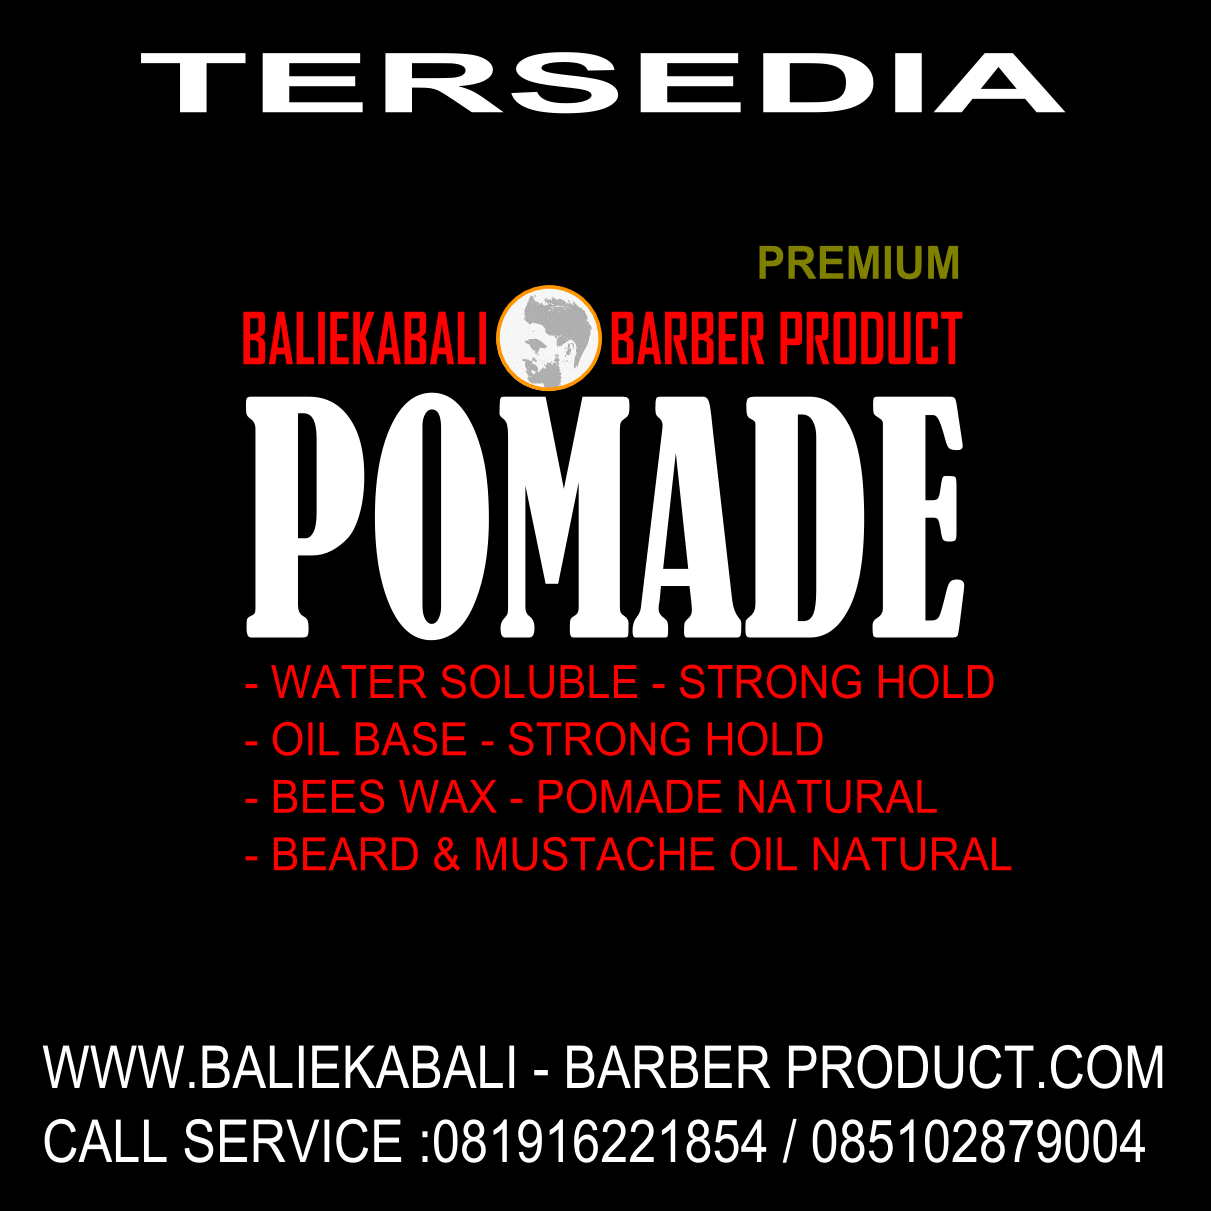 BALI BARBER PRODUCT